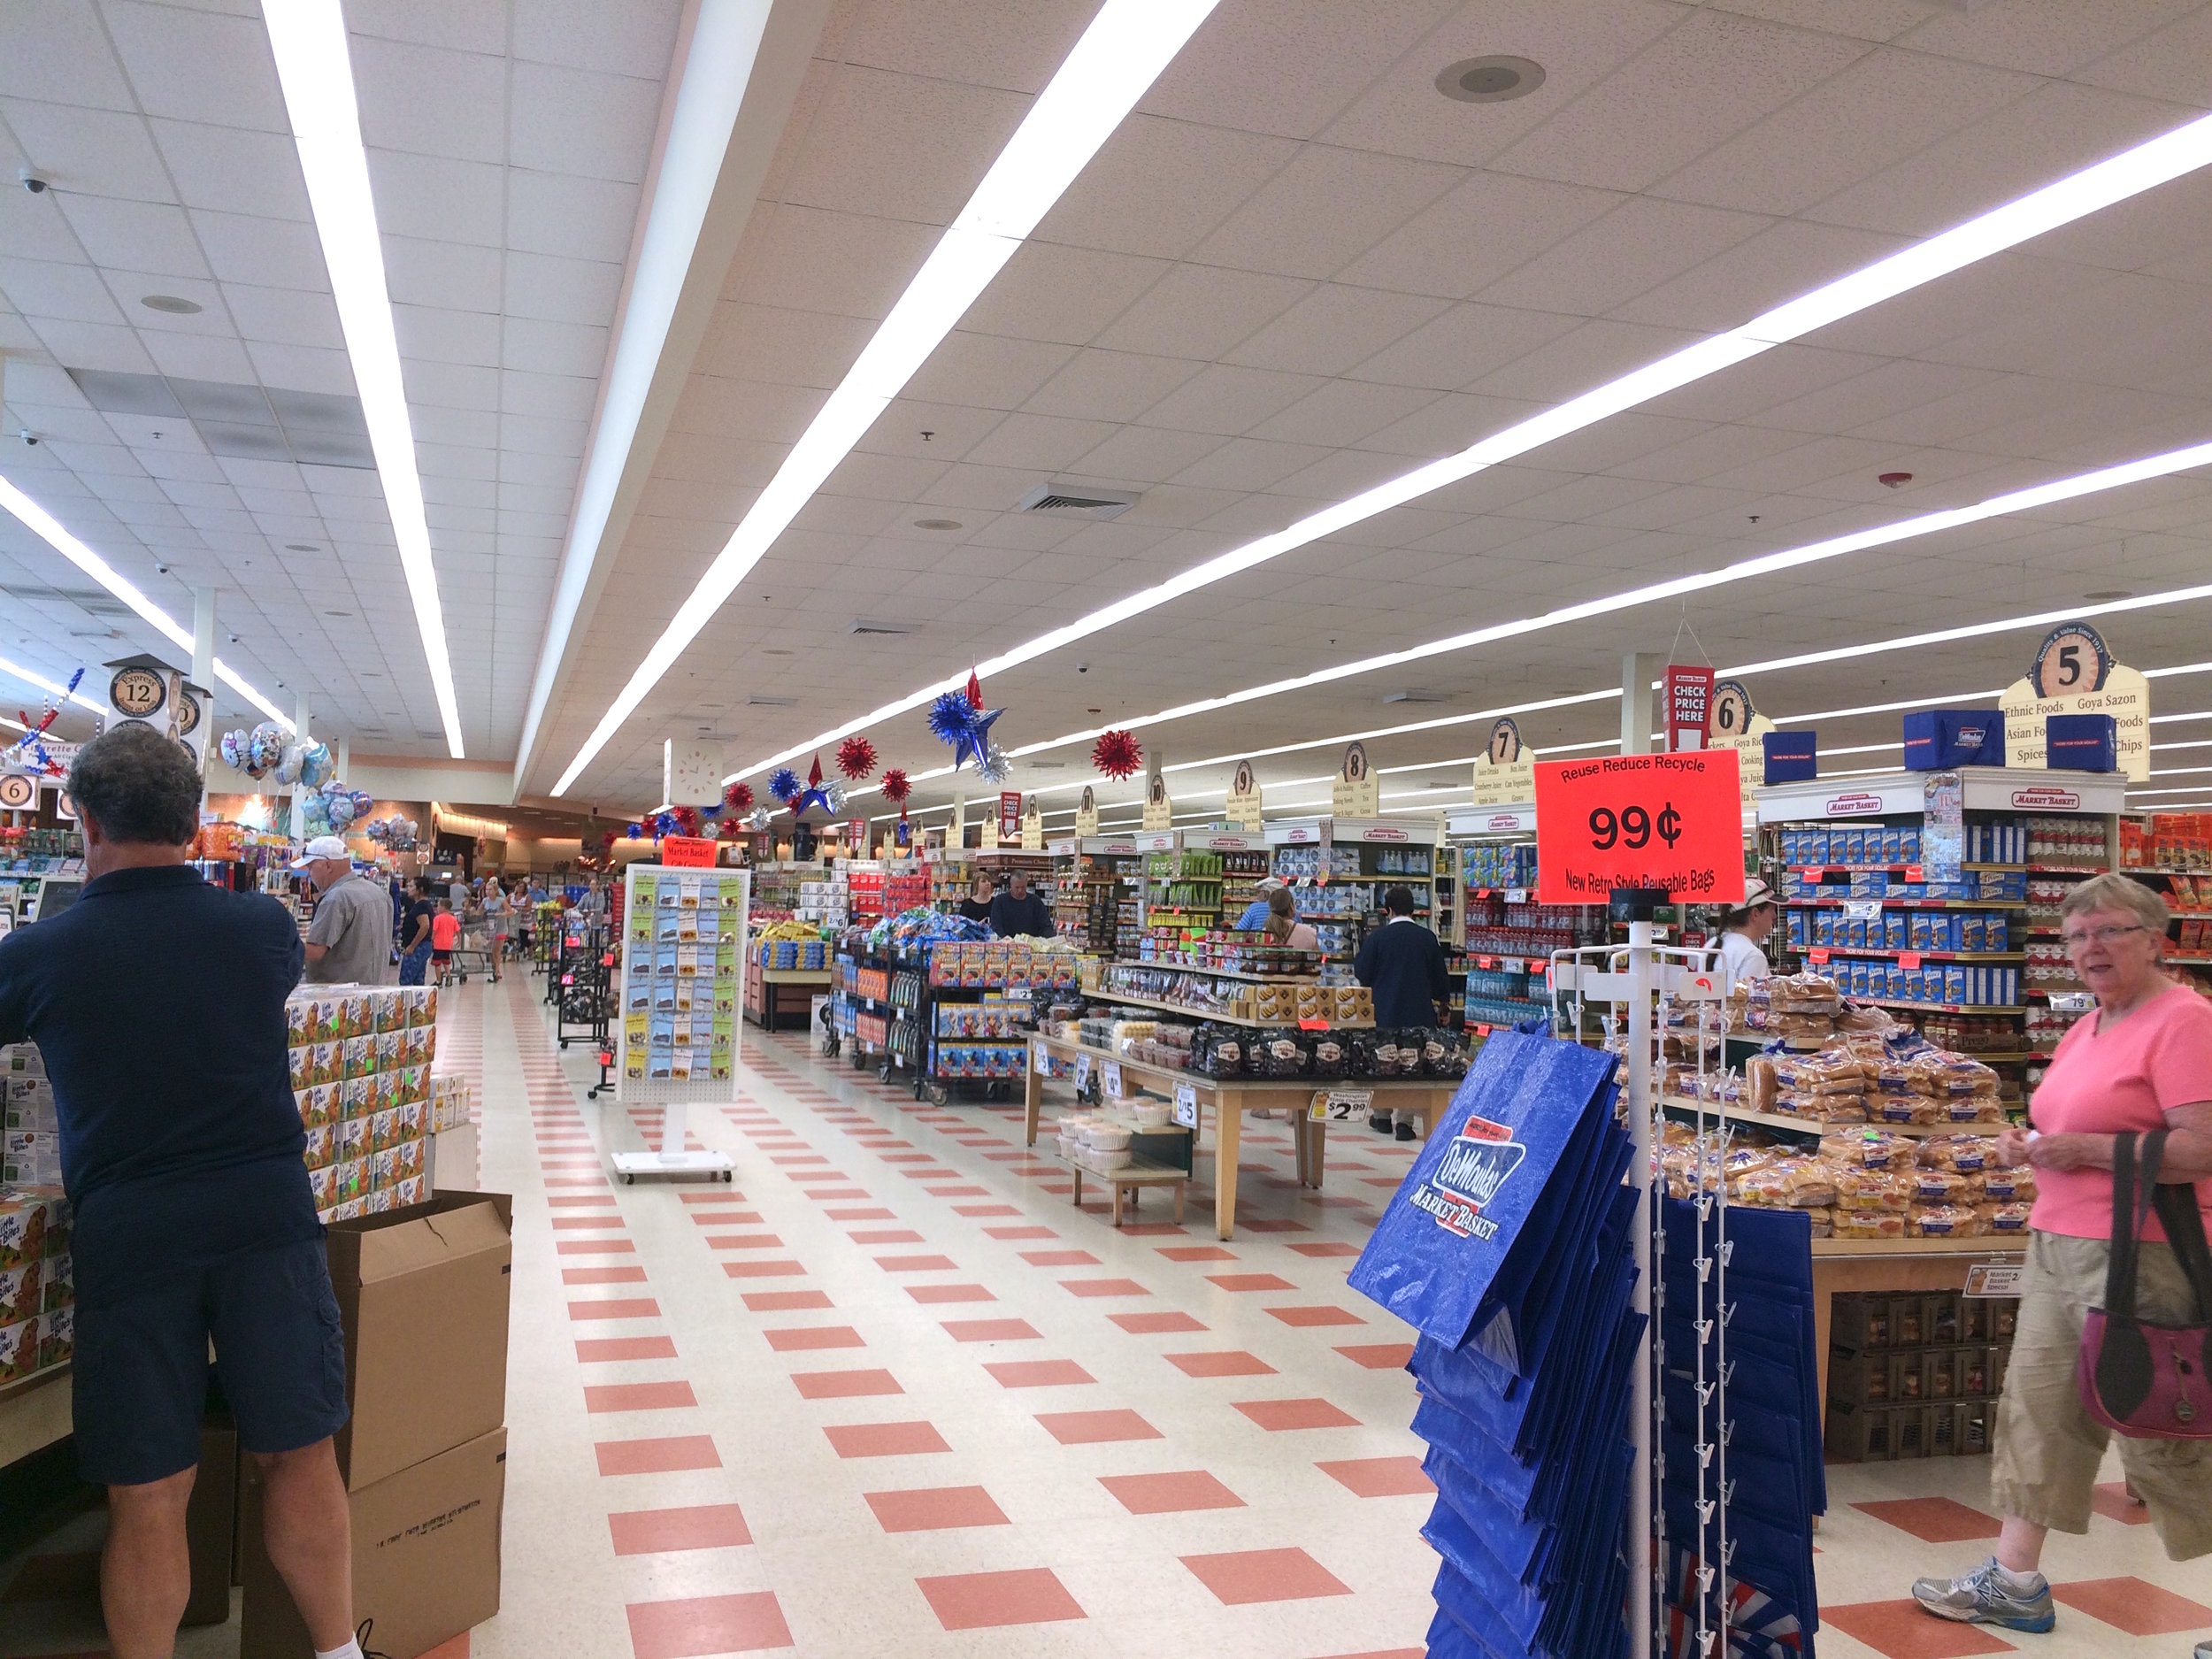 A typical Market Basket store.